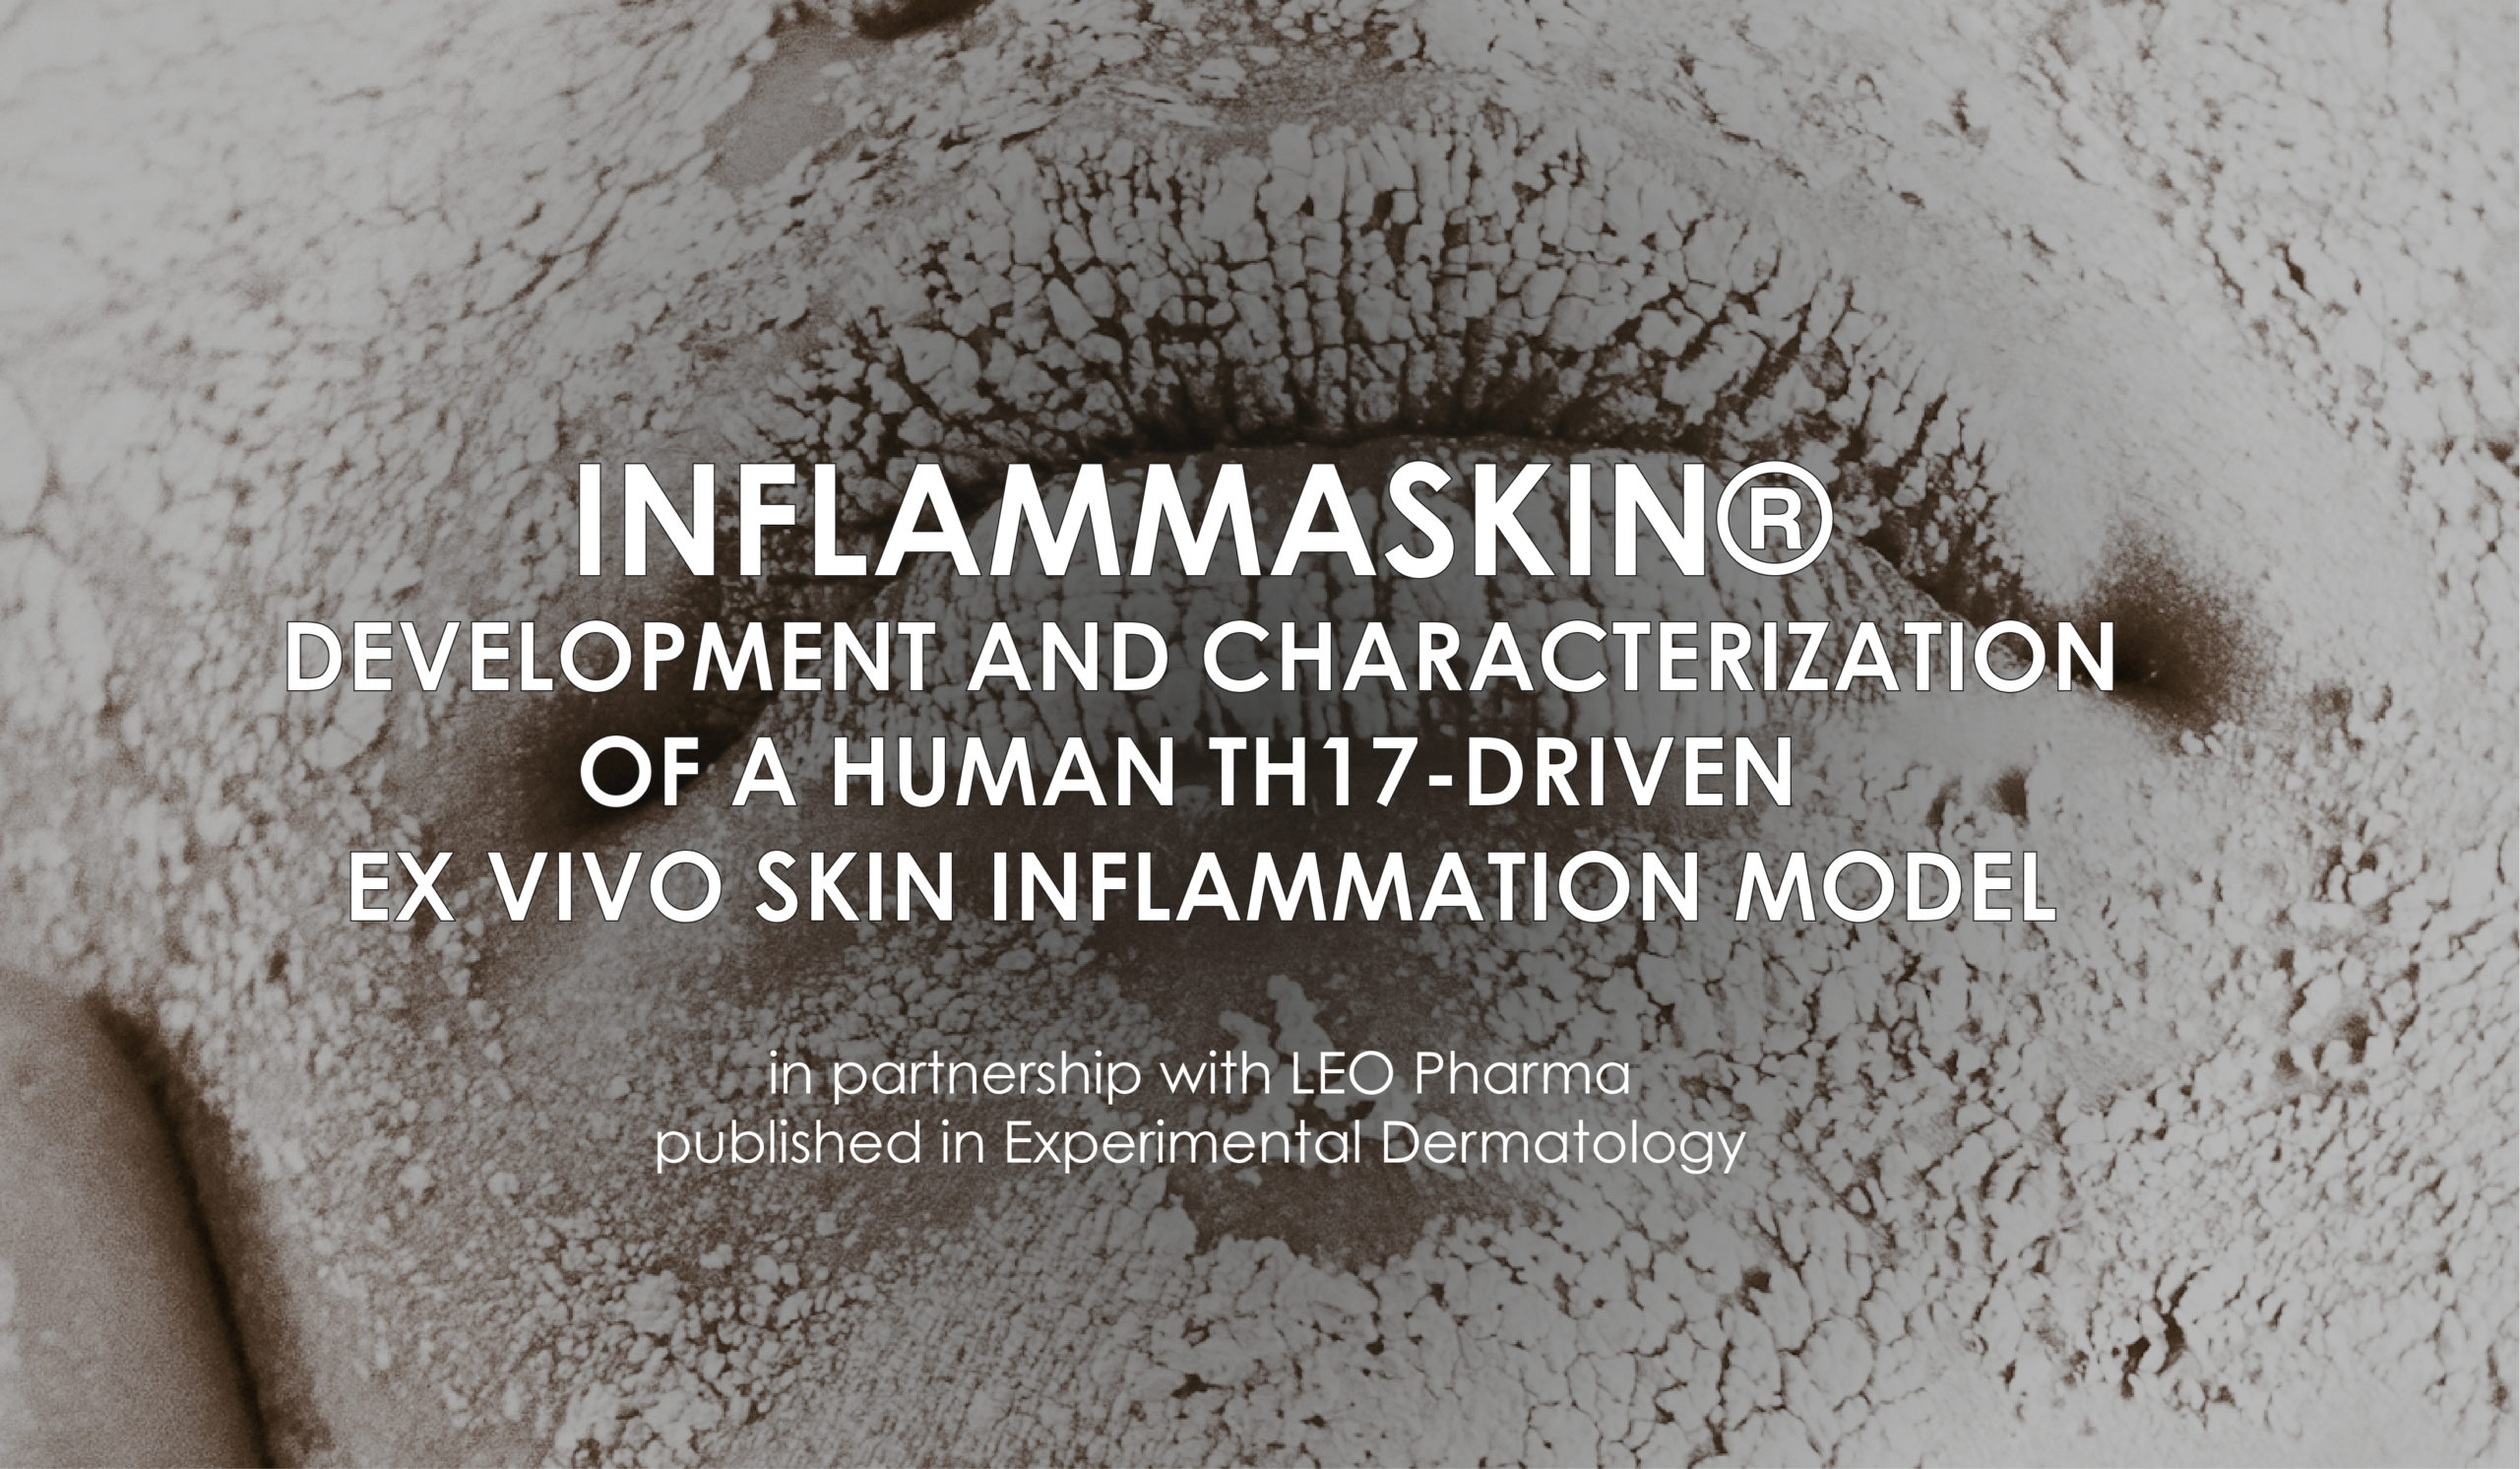 InflammaSkin: development and characterization of a human th17-driven ex vivo skin inflammation model